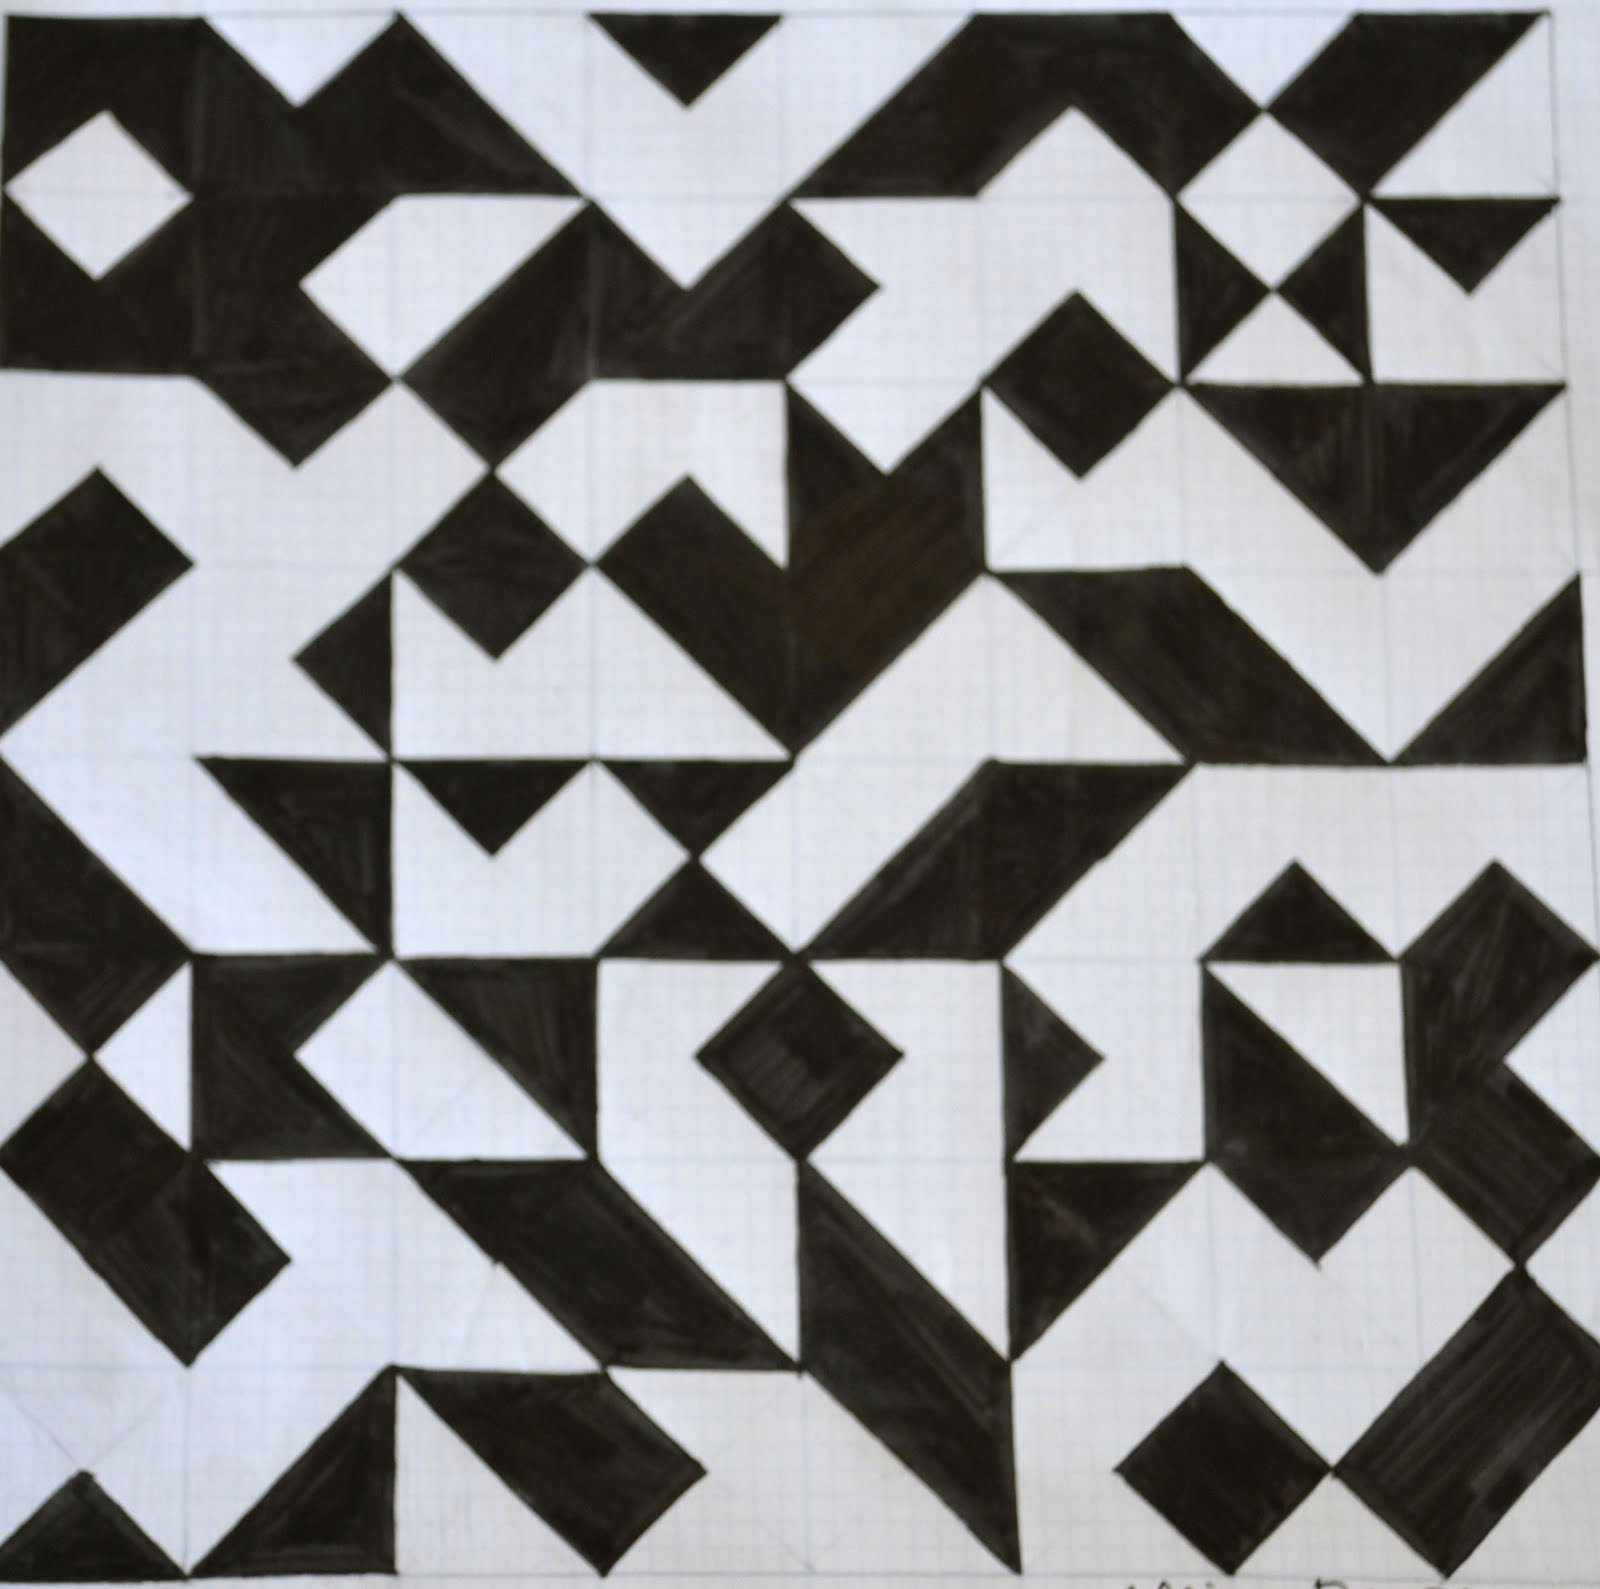 Allie plepler parsons summer 2011 geometric pattern Geometric patterns